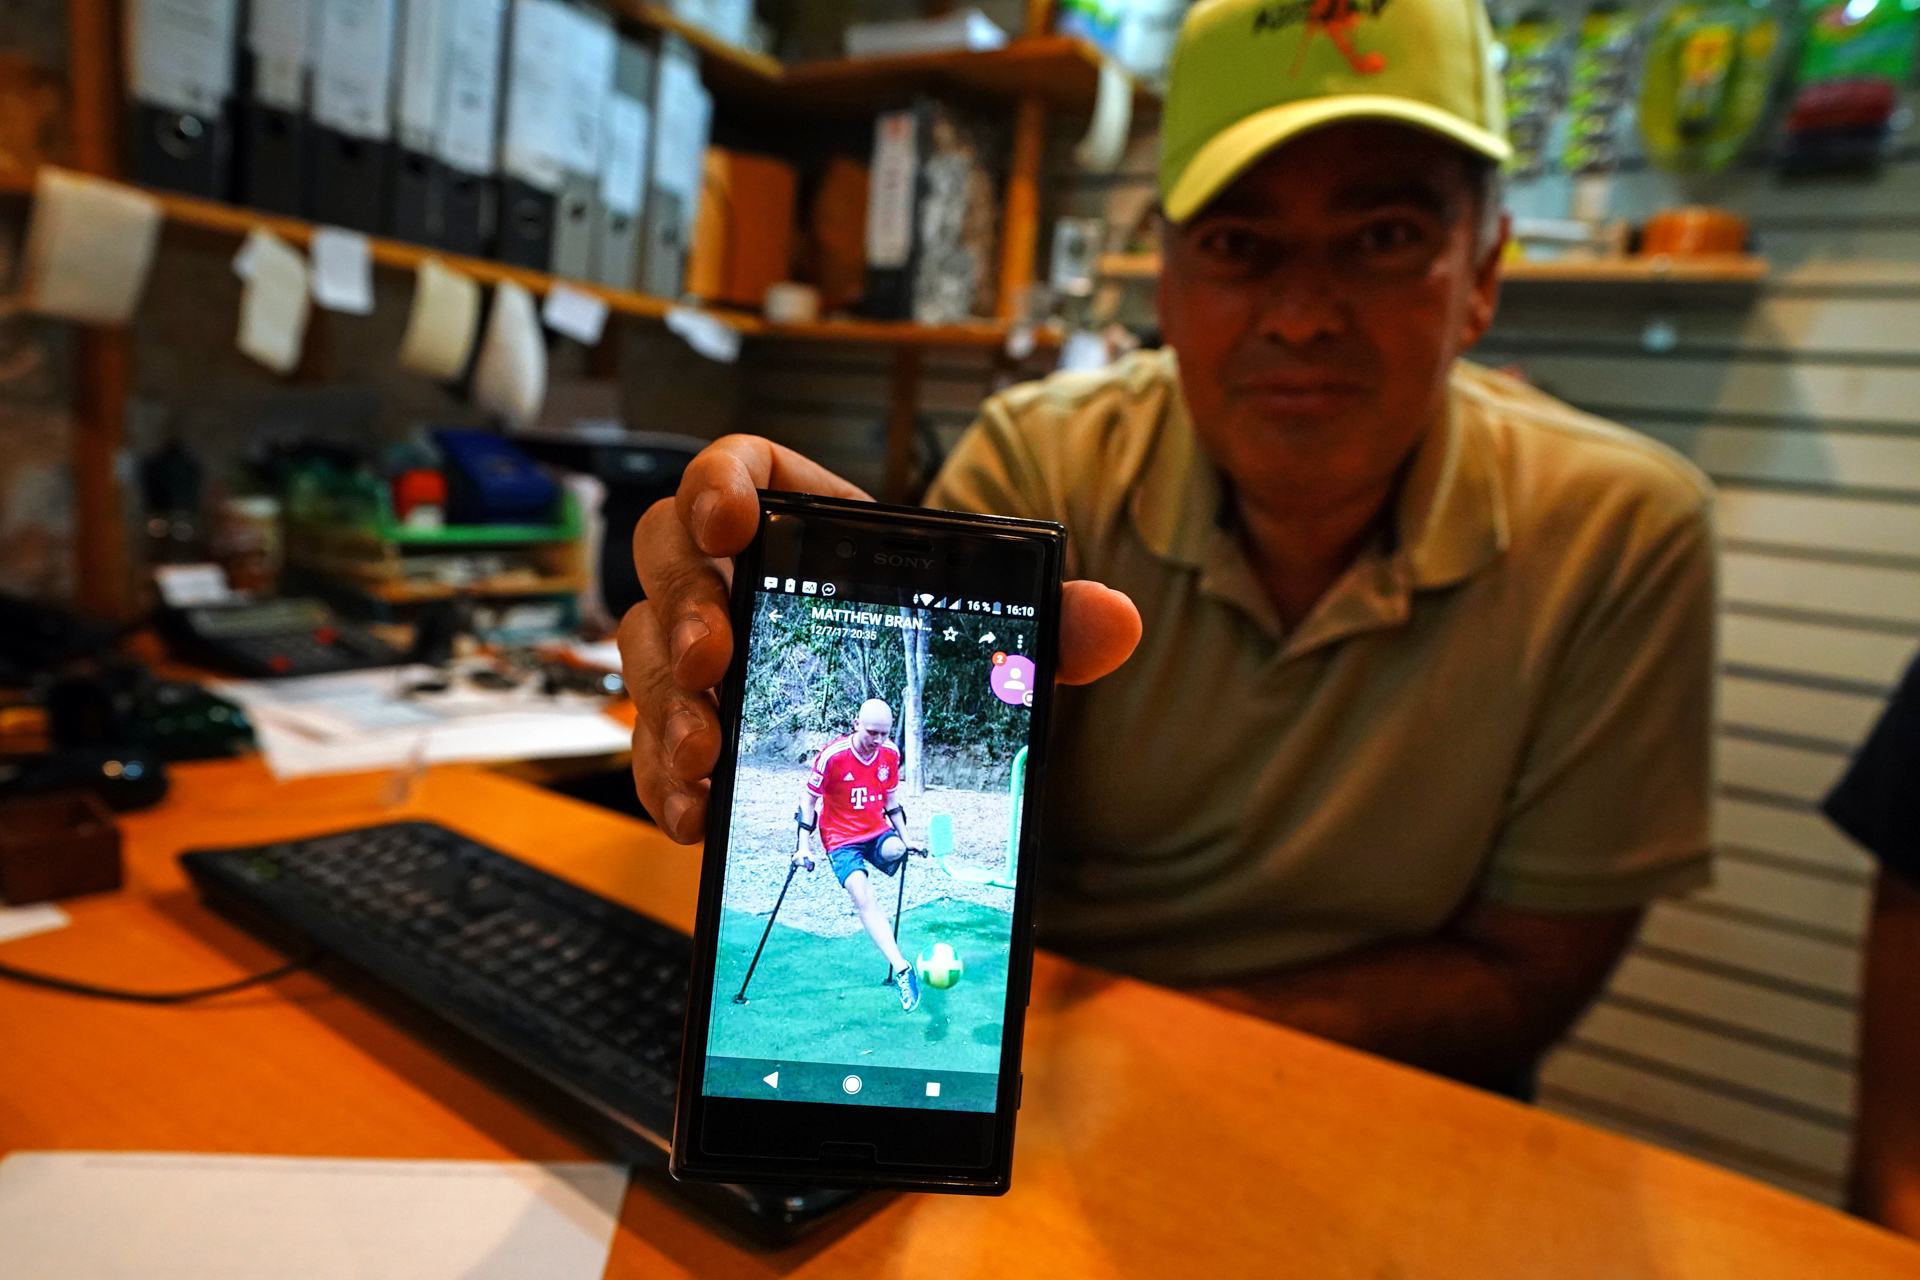 A man at a desk shows a photo on his phone of his son kicking a football on crutches